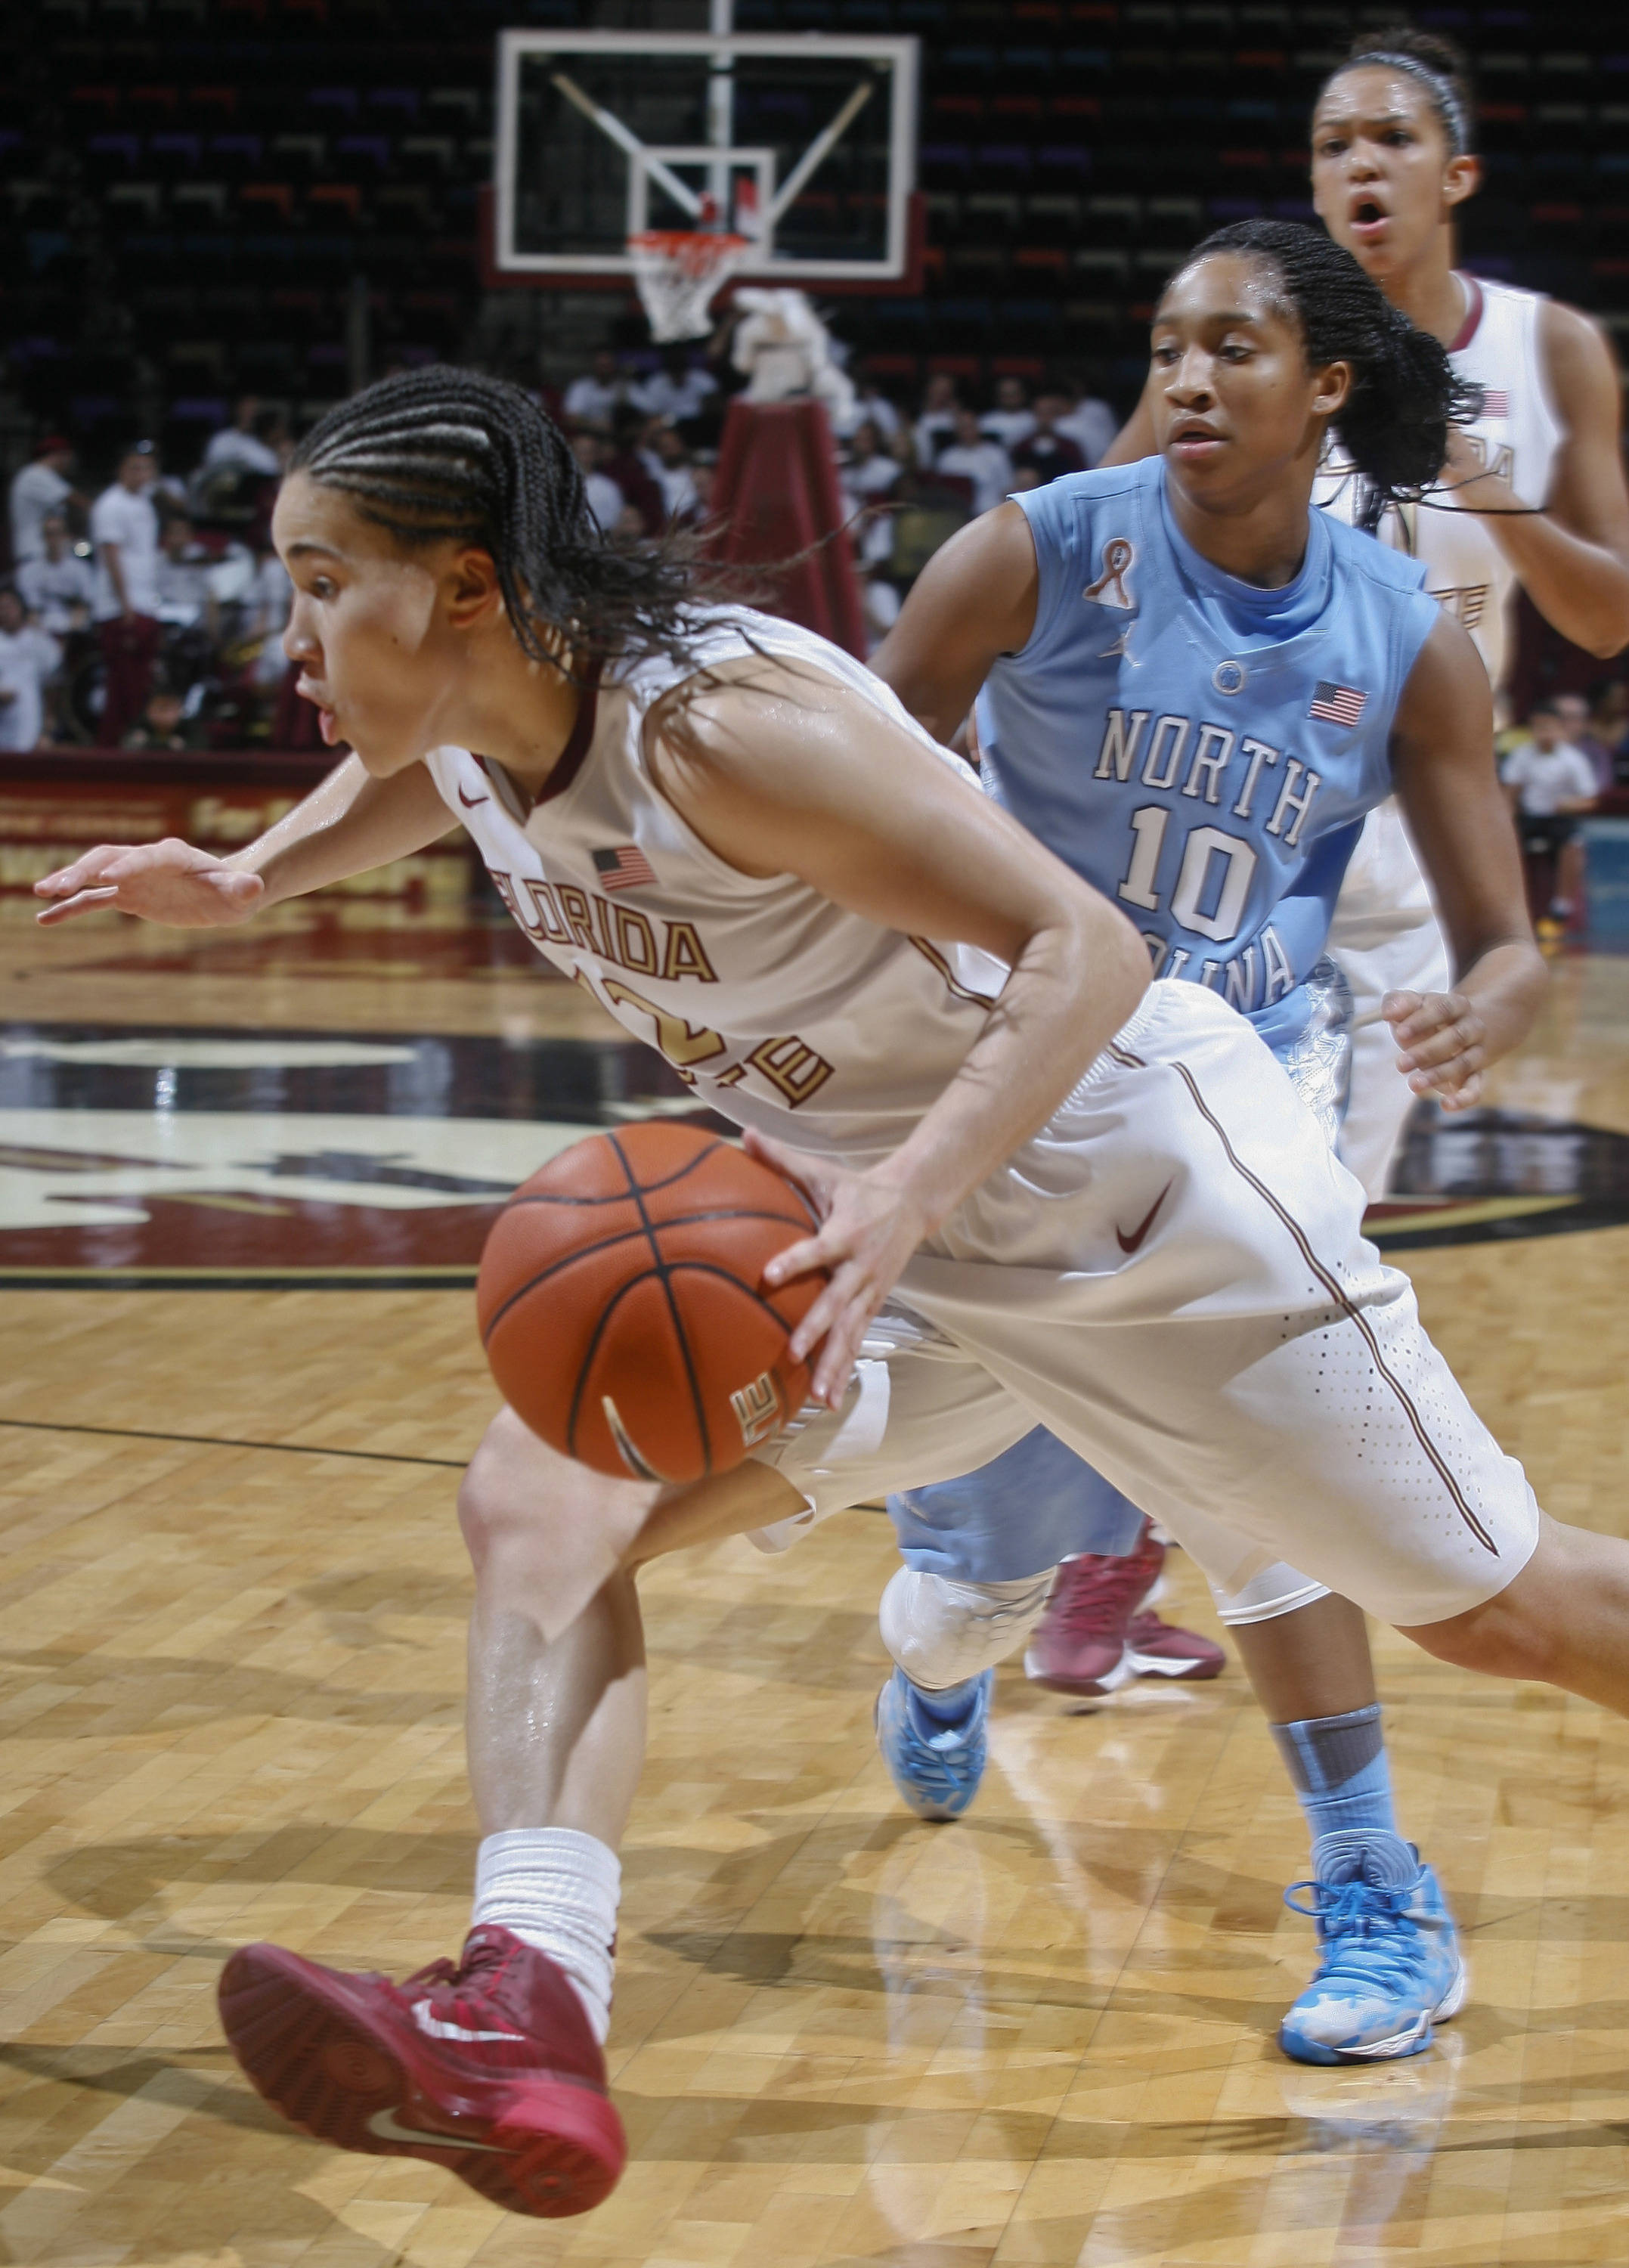 Jan 12, 2014; Tallahassee, FL, USA; Florida State Seminoles guard Brittany Brown (12) drives around North Carolina Tar Heels guard Danielle Butts (10) in the second half at the Tucker Center. The North Carolina Tar Heels defeated the Florida State Seminoles 65-61. Mandatory Credit: Phil Sears-USA TODAY Sports